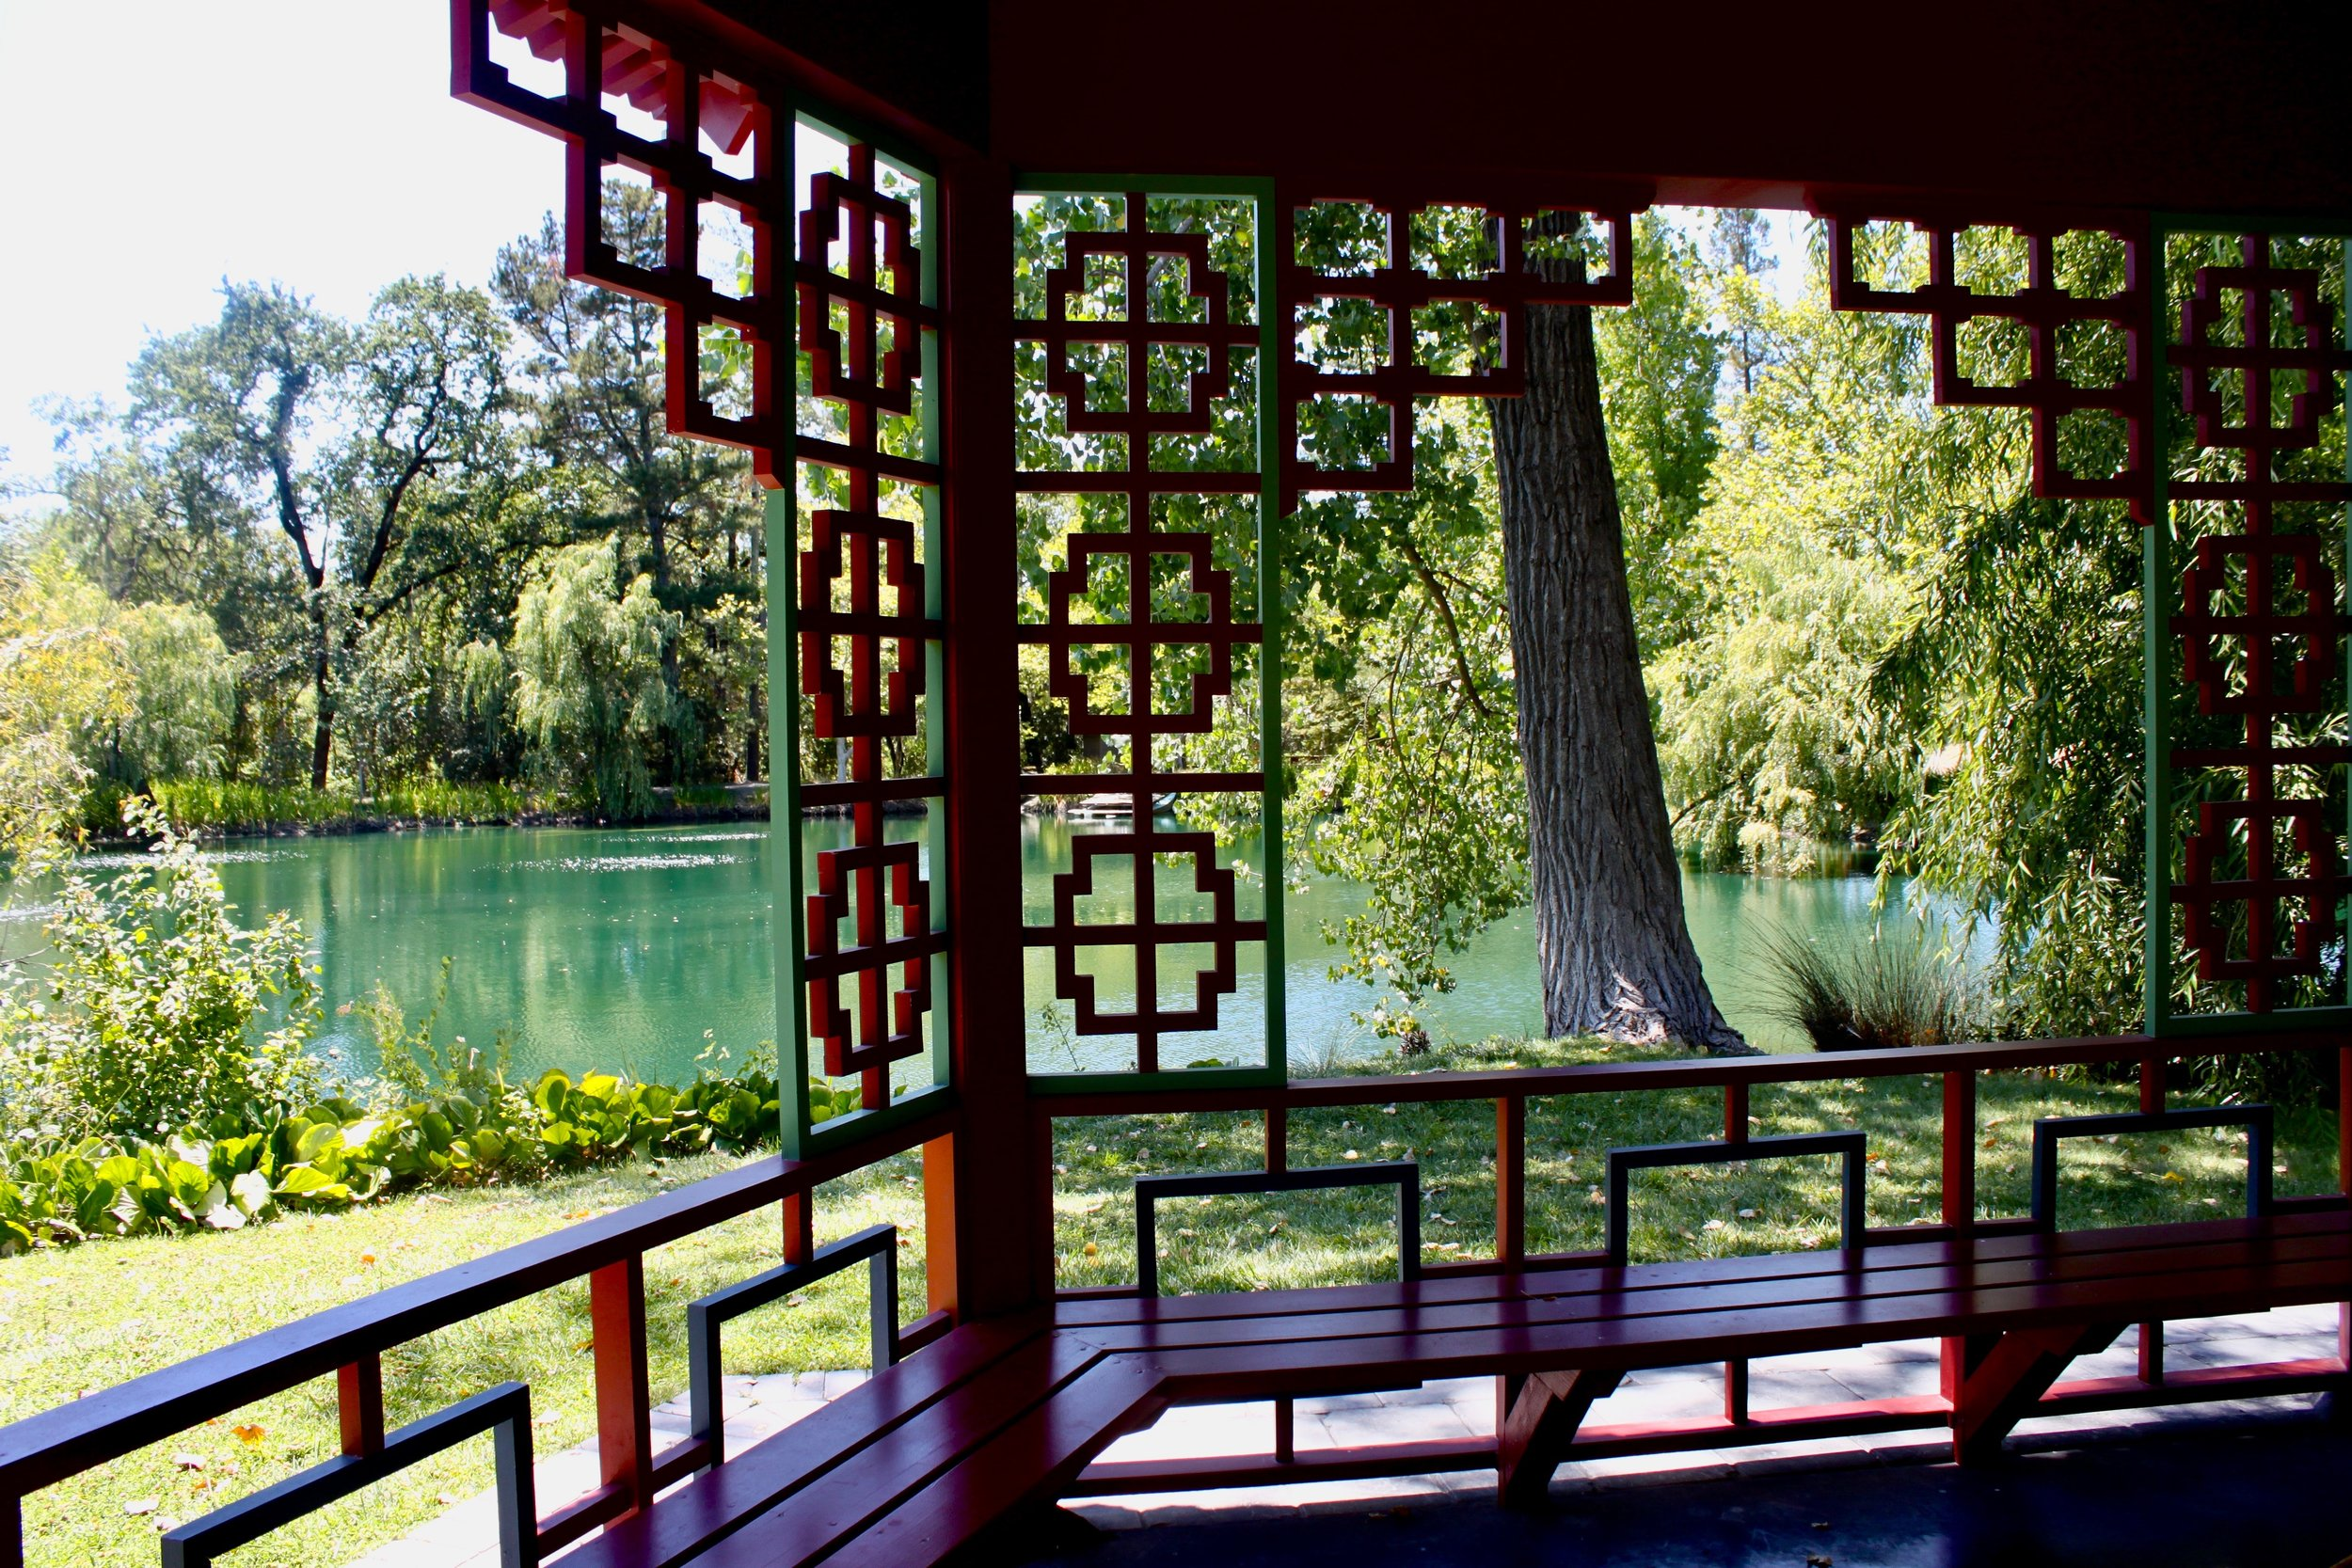 Take a stroll through the serene Chinese gardens at Chateau Montelena.